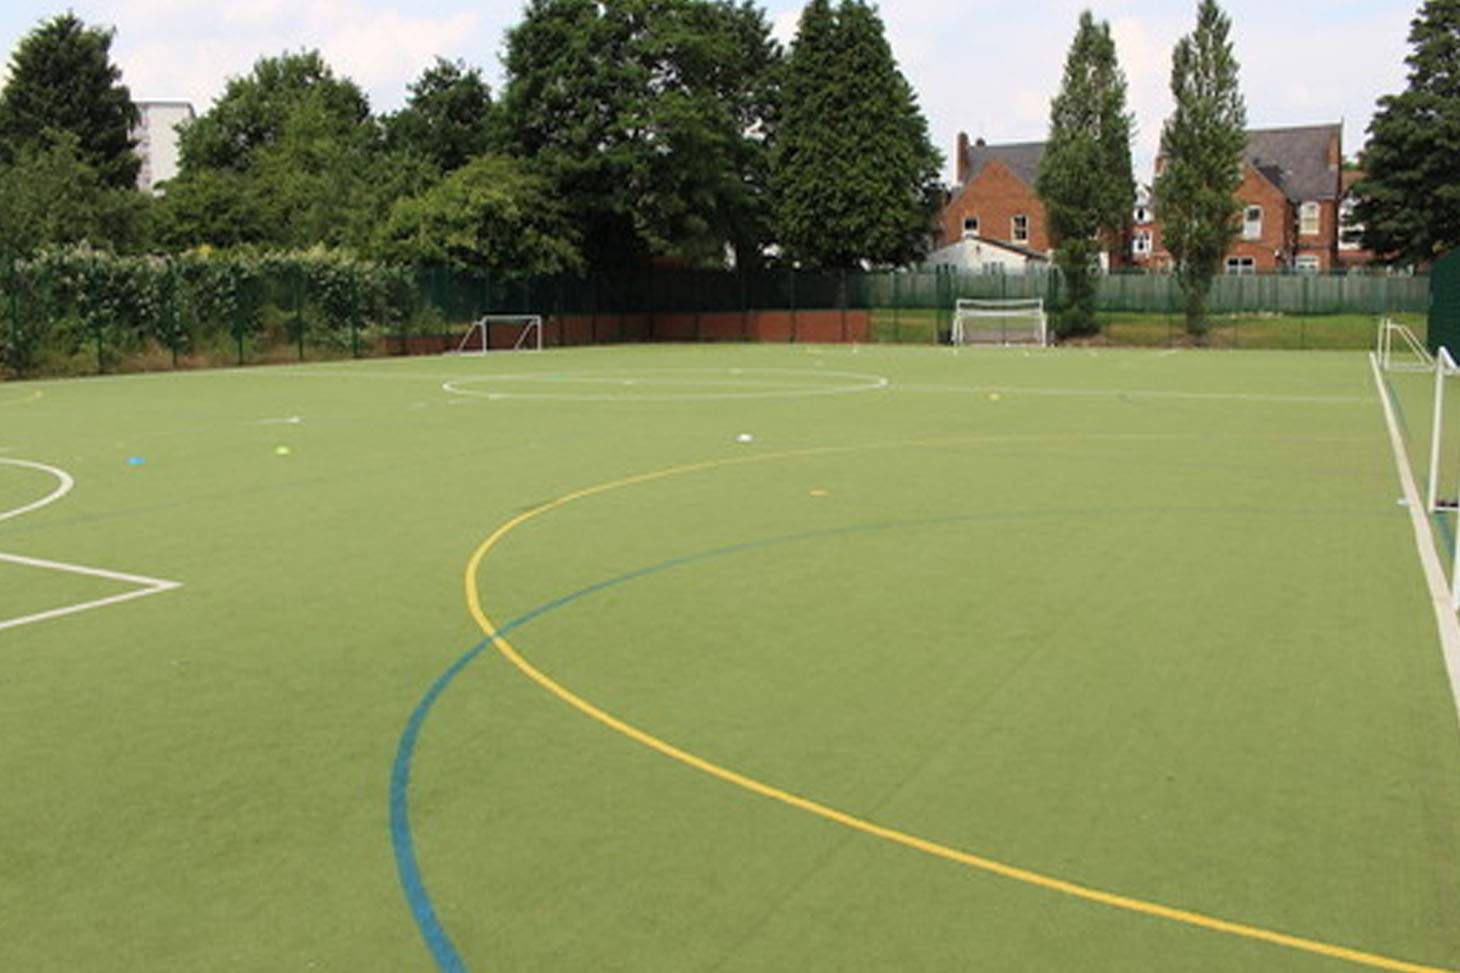 St Edmund Campion Catholic School & Sixth Form Centre Pitch | Sand-based Astroturf rugby pitch